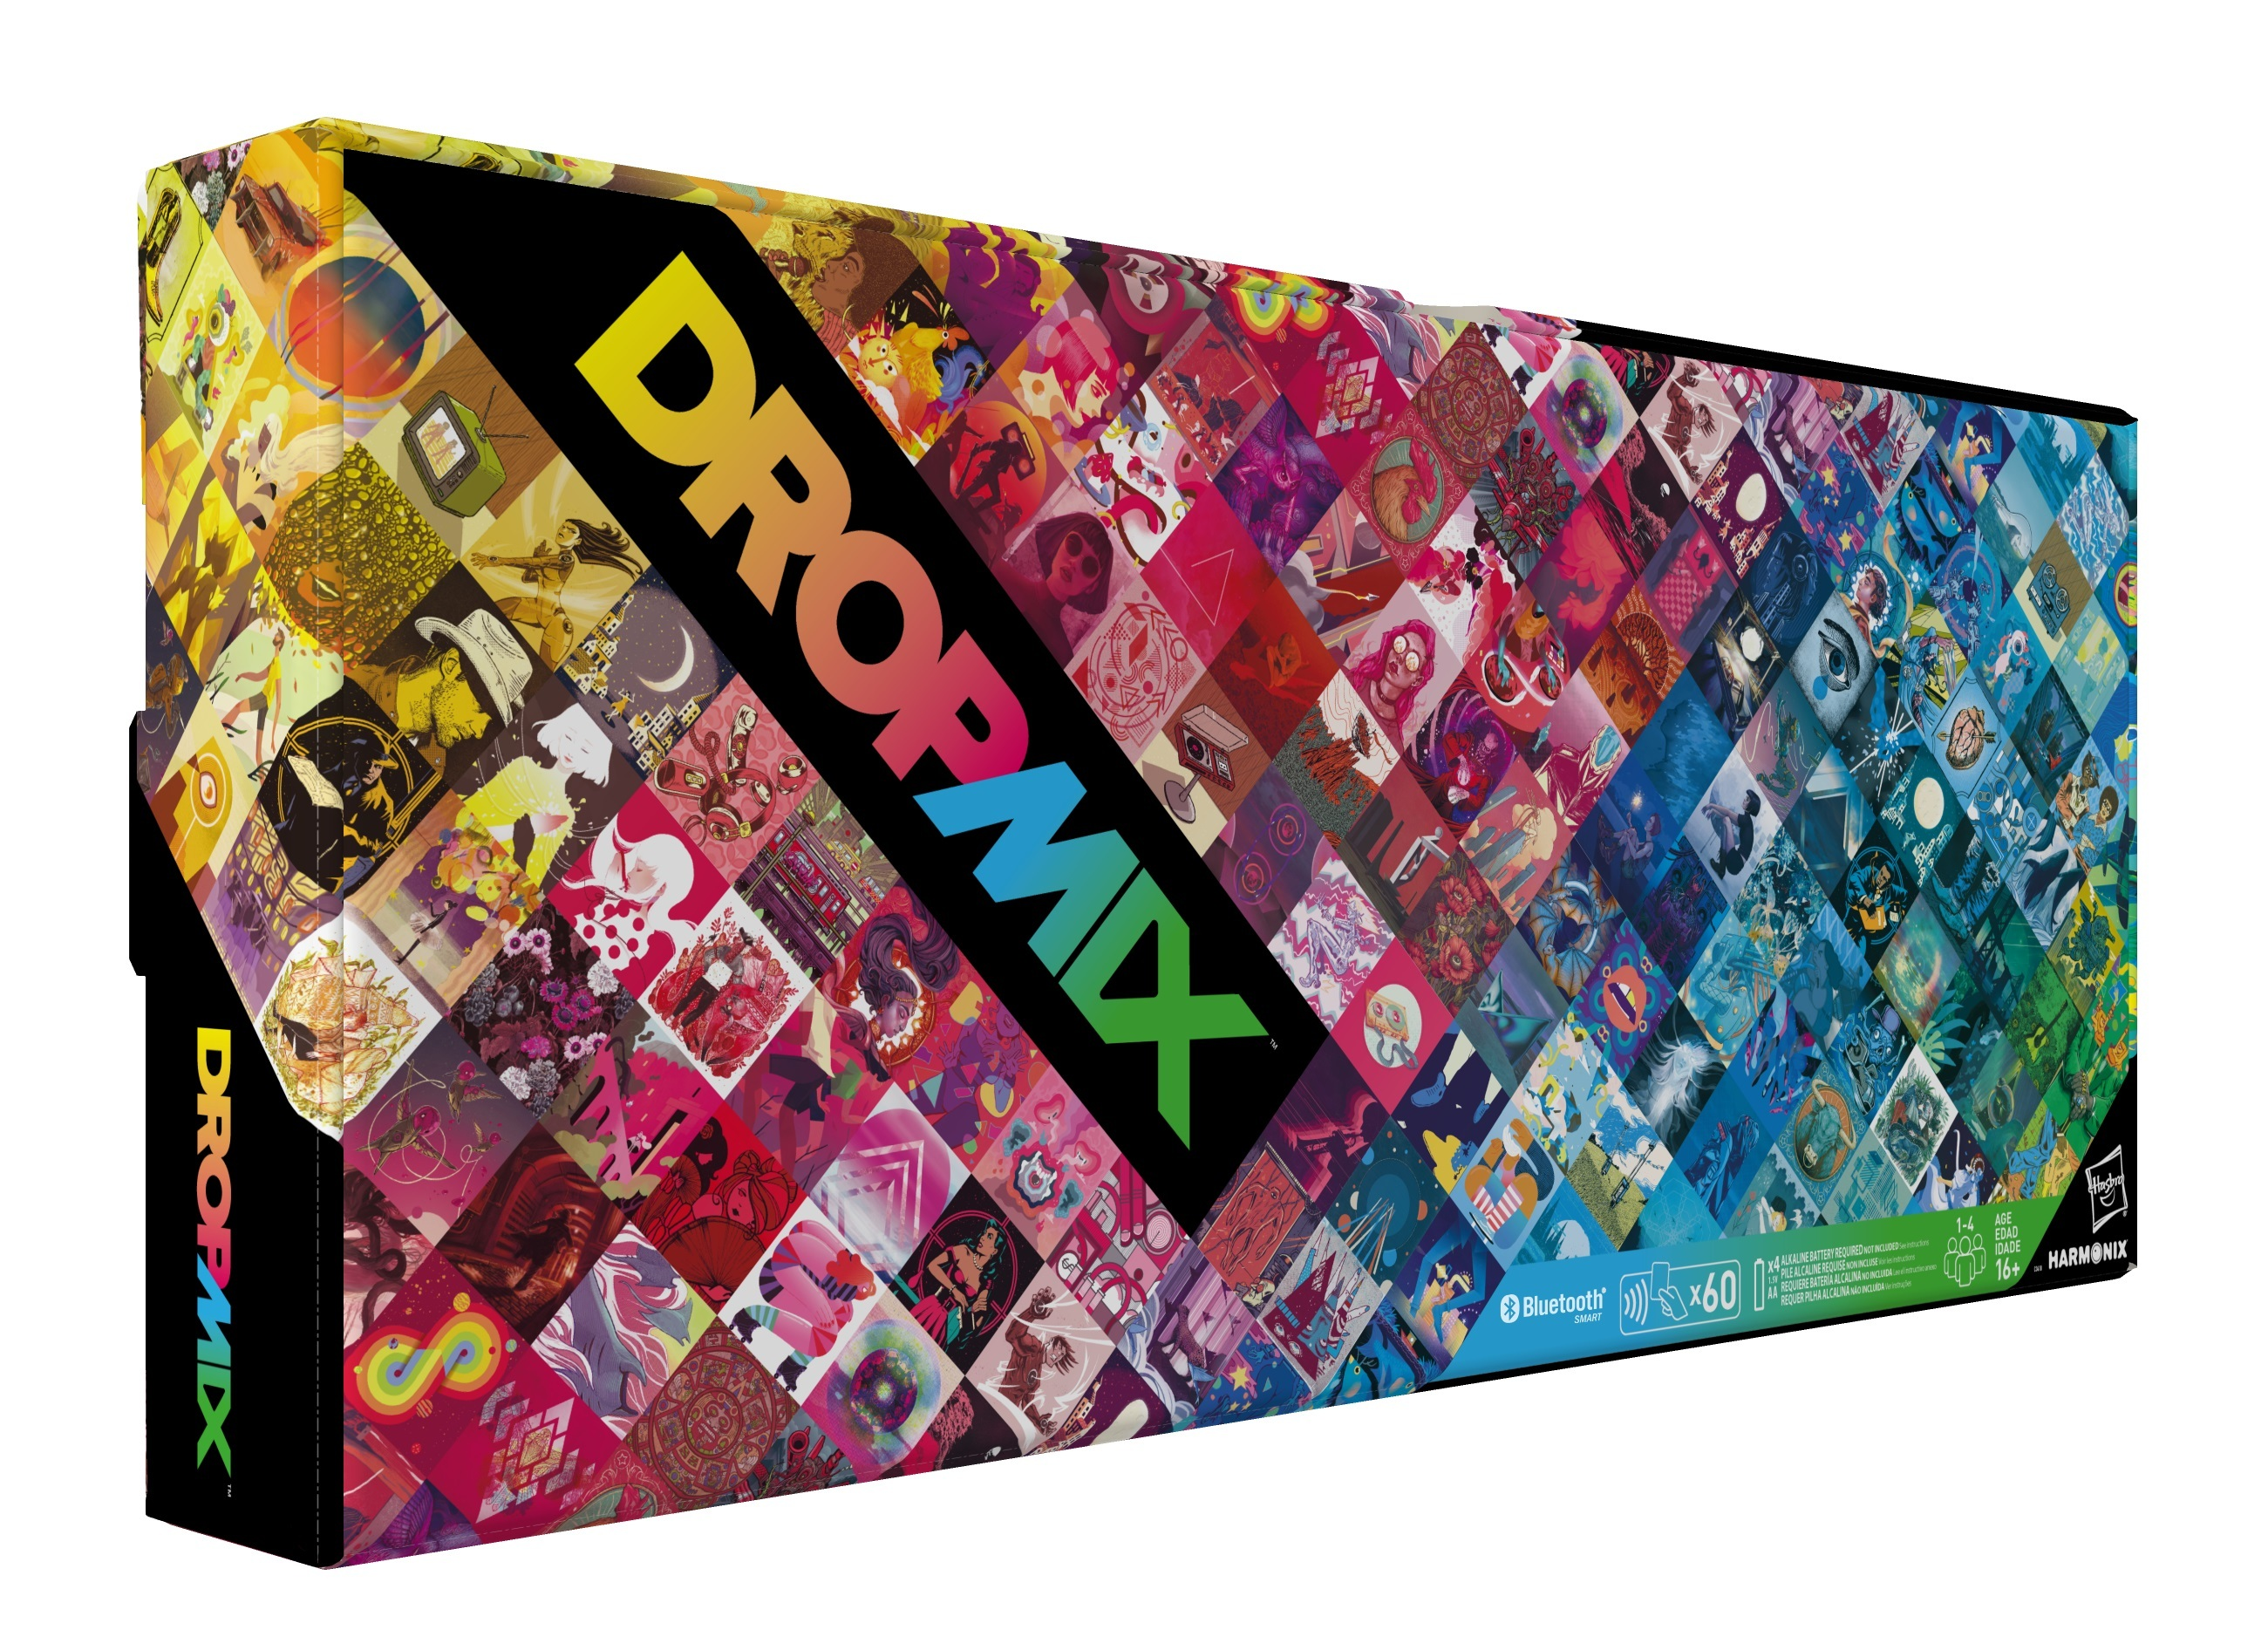 Hasbro and Harmonix Revolutionize Music Gaming with the Launch of DROPMIX (Photo: Business Wire)